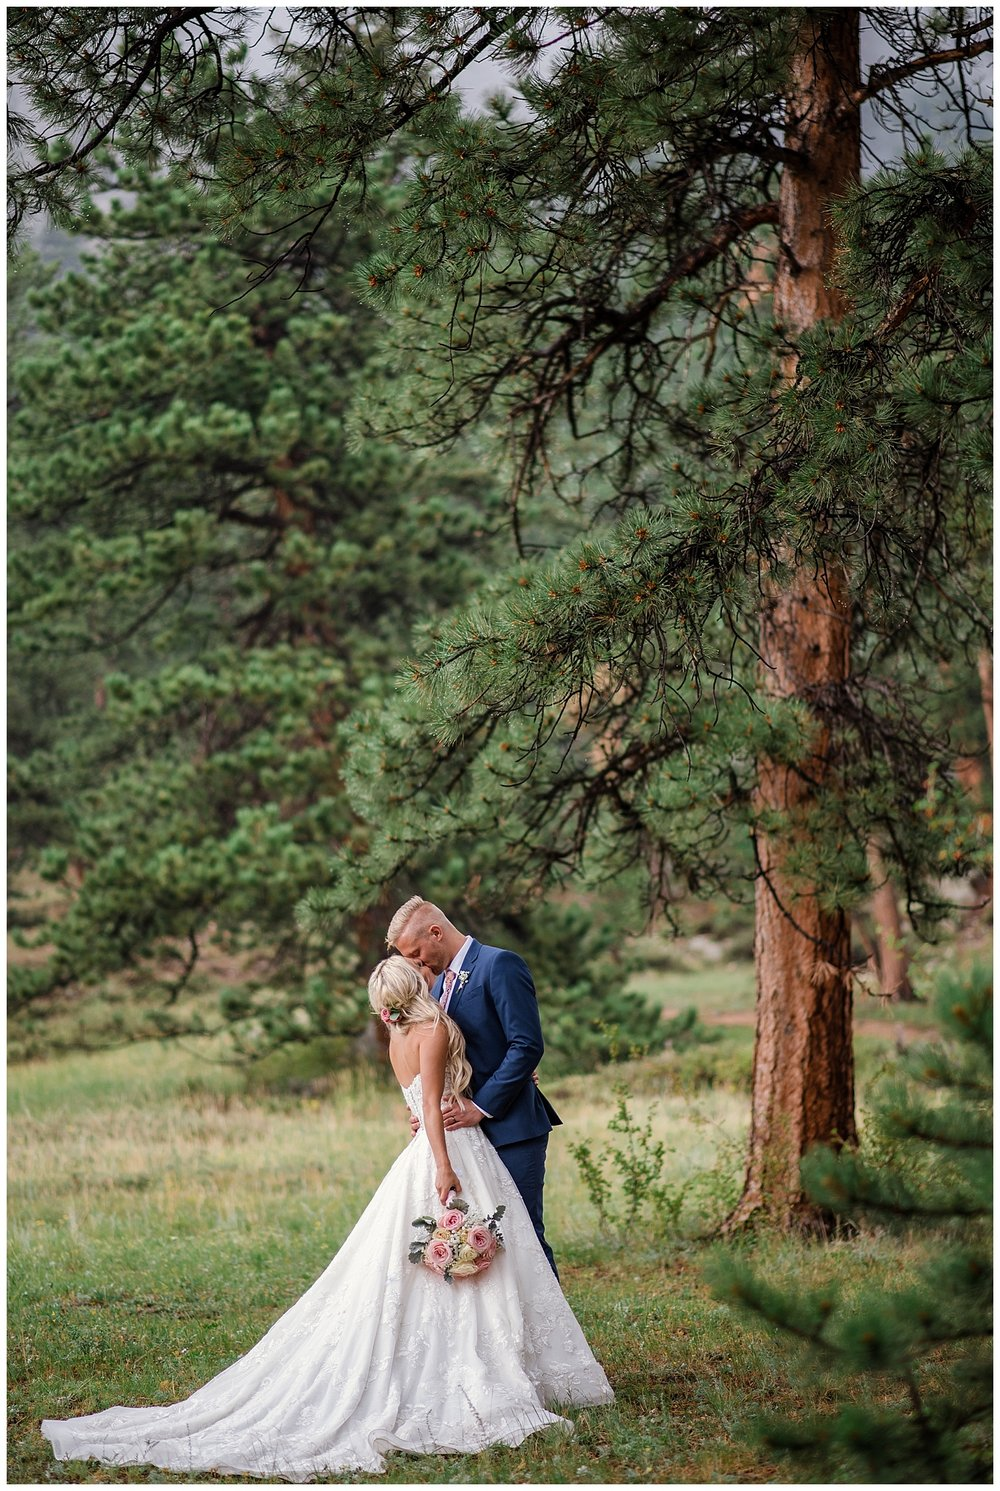 wedding reception in estes, Della Terra Mountain Chateau wedding, Estes park wedding, estes park wedding photographer, Colorado wedding photographer, rocky mountain wedding photographer, intimate colorado wedding photographer, small wedding photographer colorado,